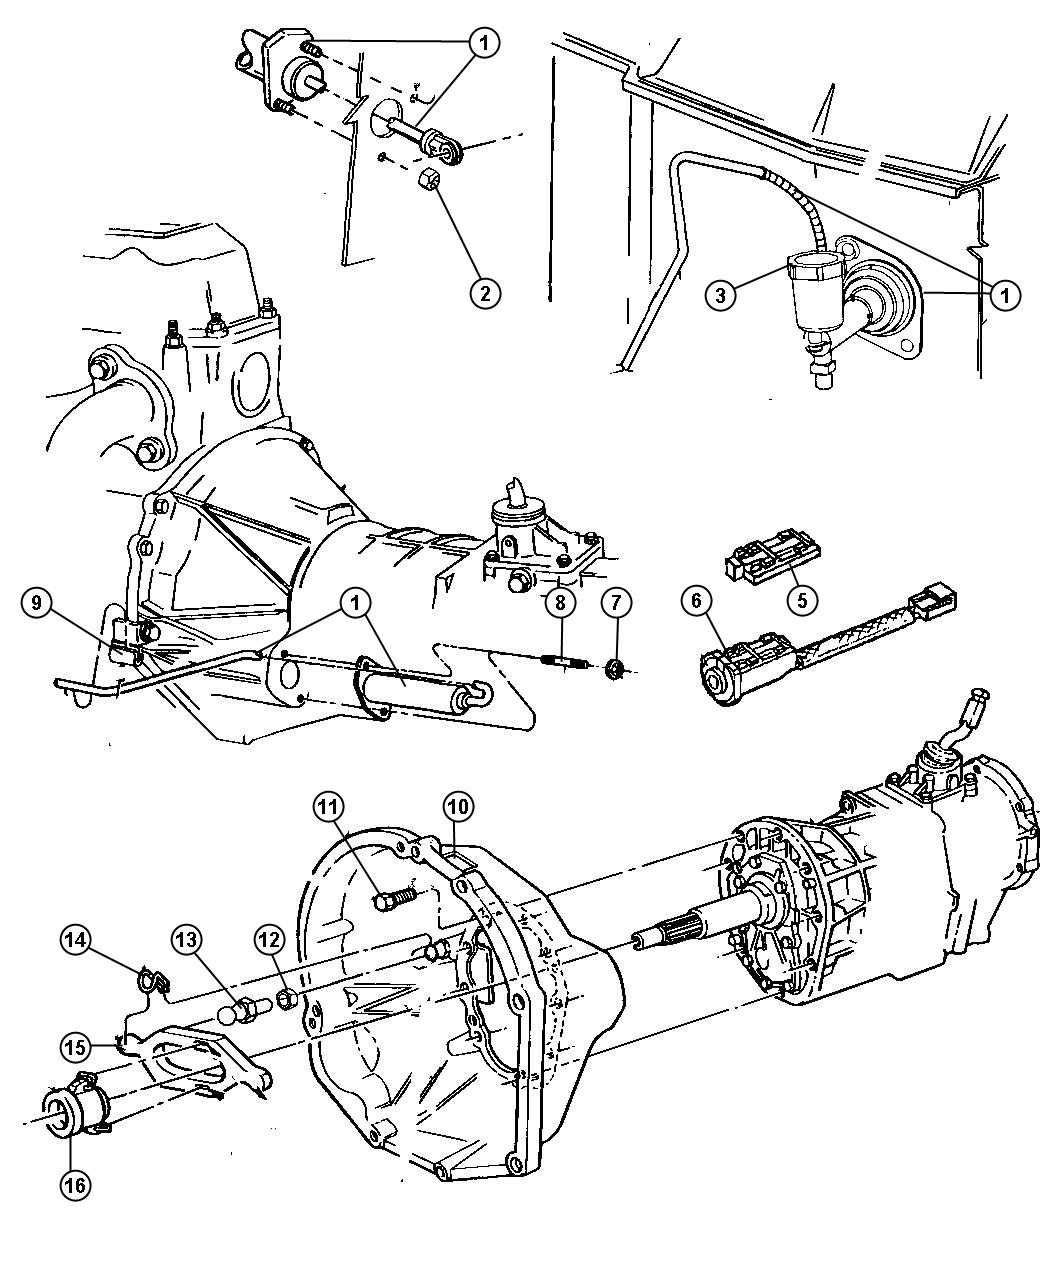 Controls,Hydraulic Clutch. Diagram